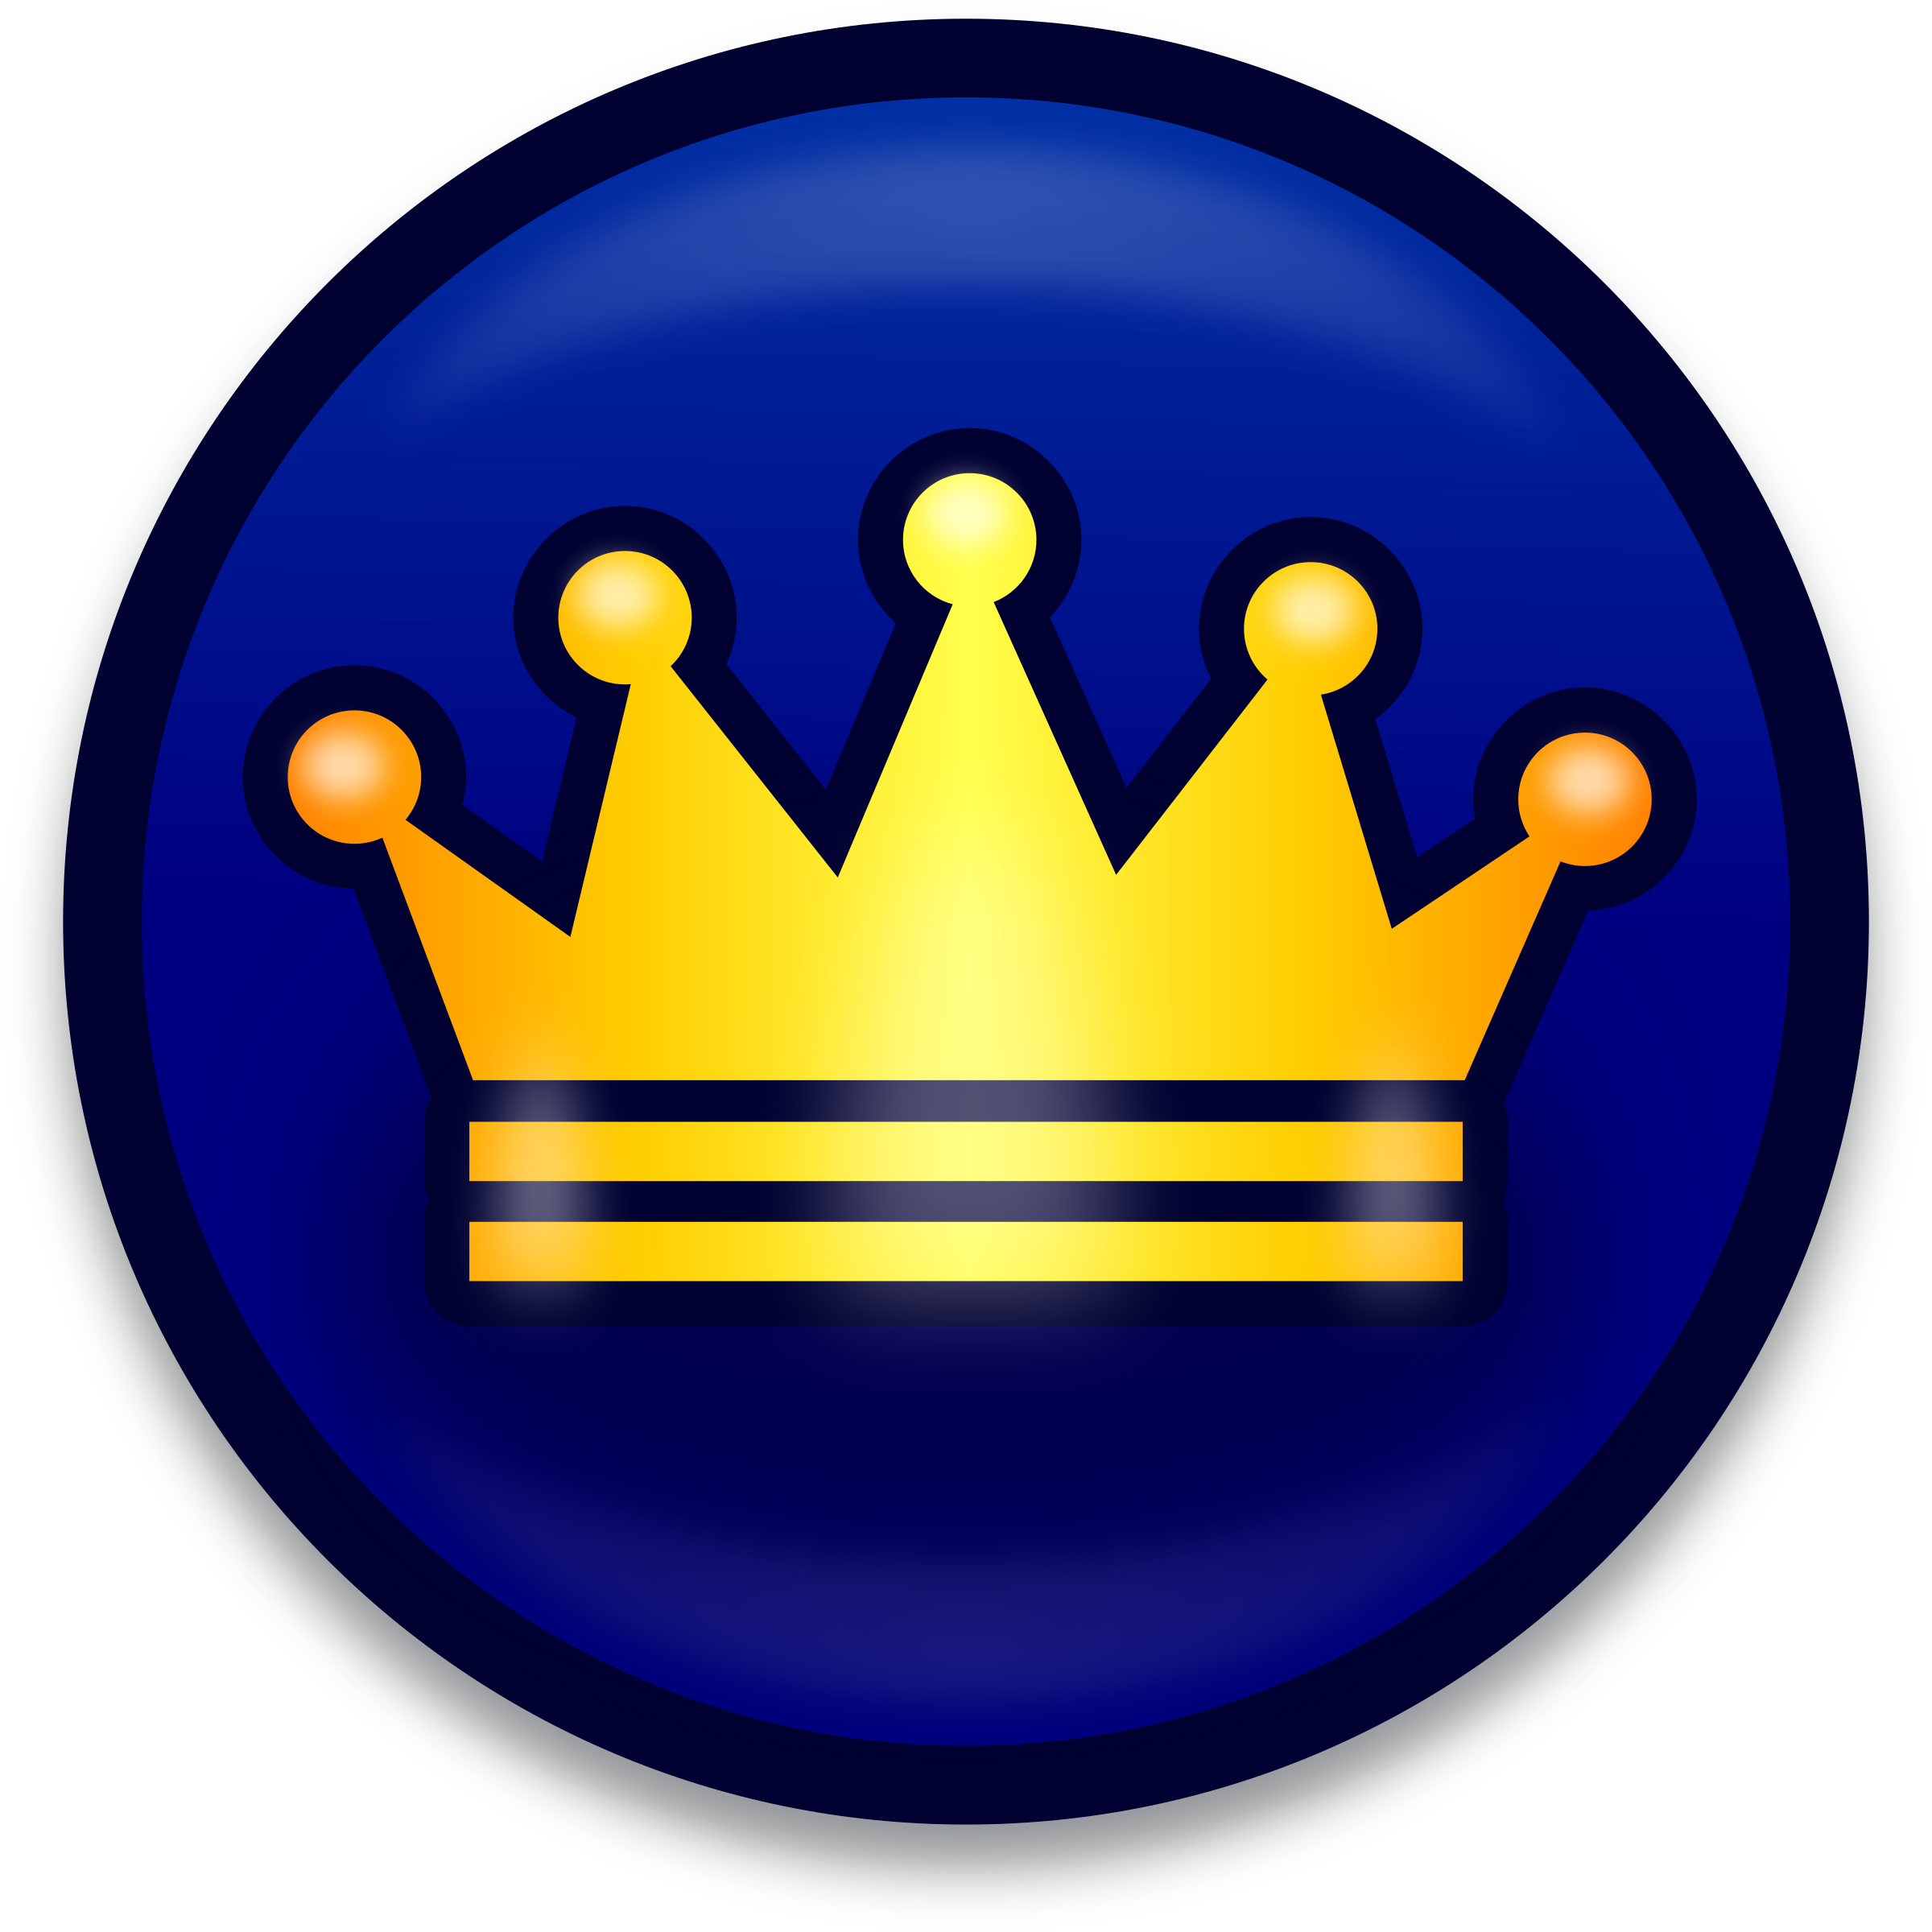 Golden and blue crown clipart image black and white stock Clipart - Golden crown symbol - icon image black and white stock